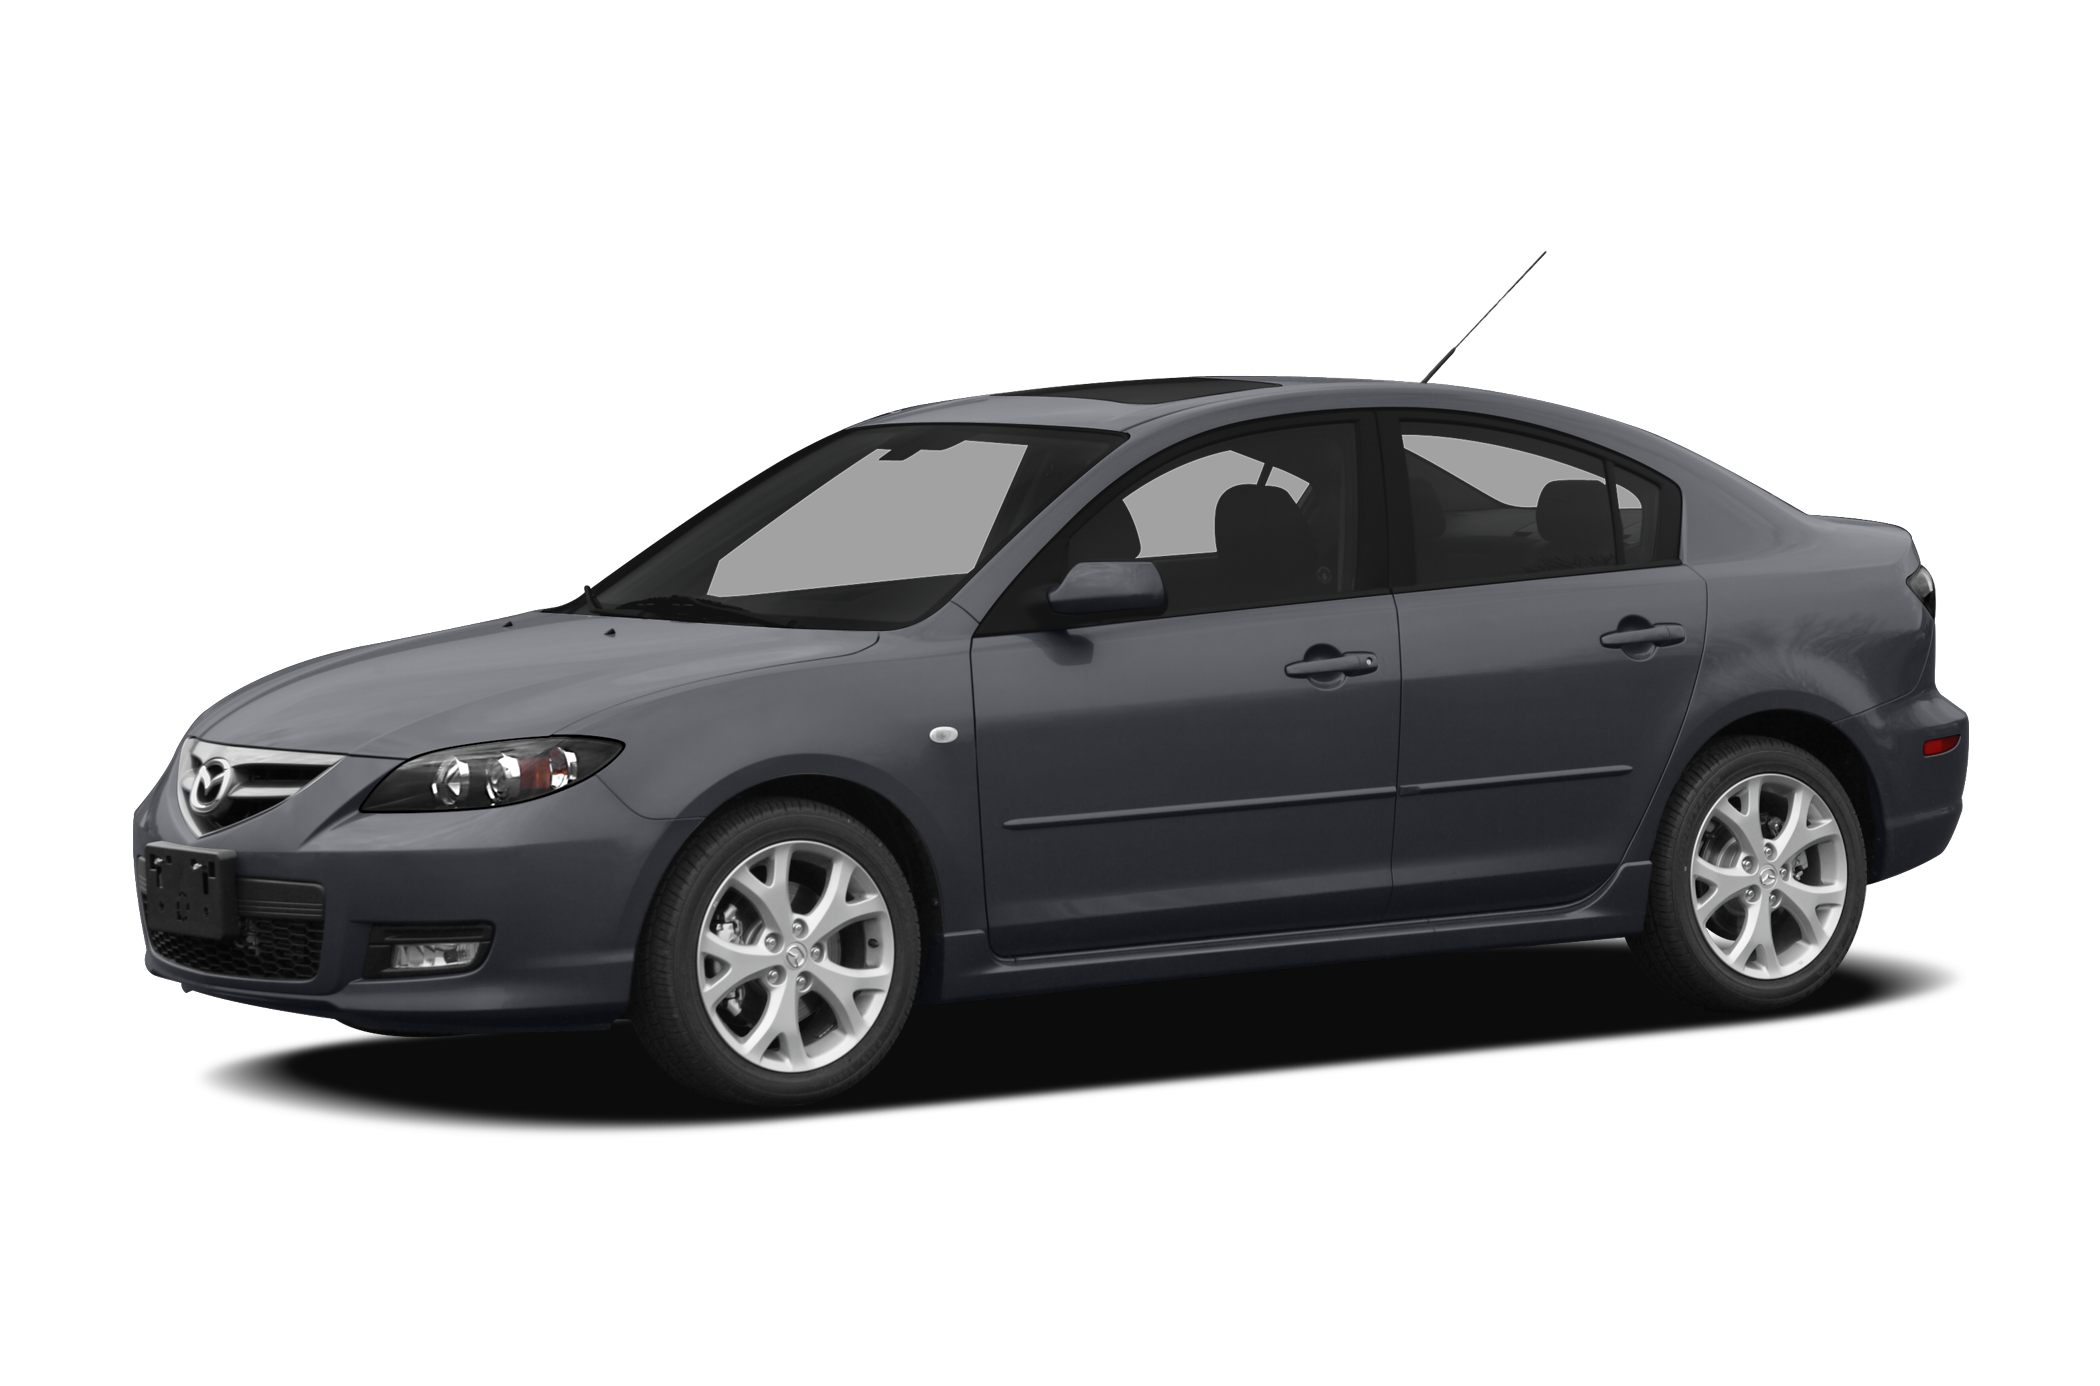 2009 Mazda Mazda3 I Touring Value Sedan for sale in Dillsburg for $10,573 with 83,419 miles.